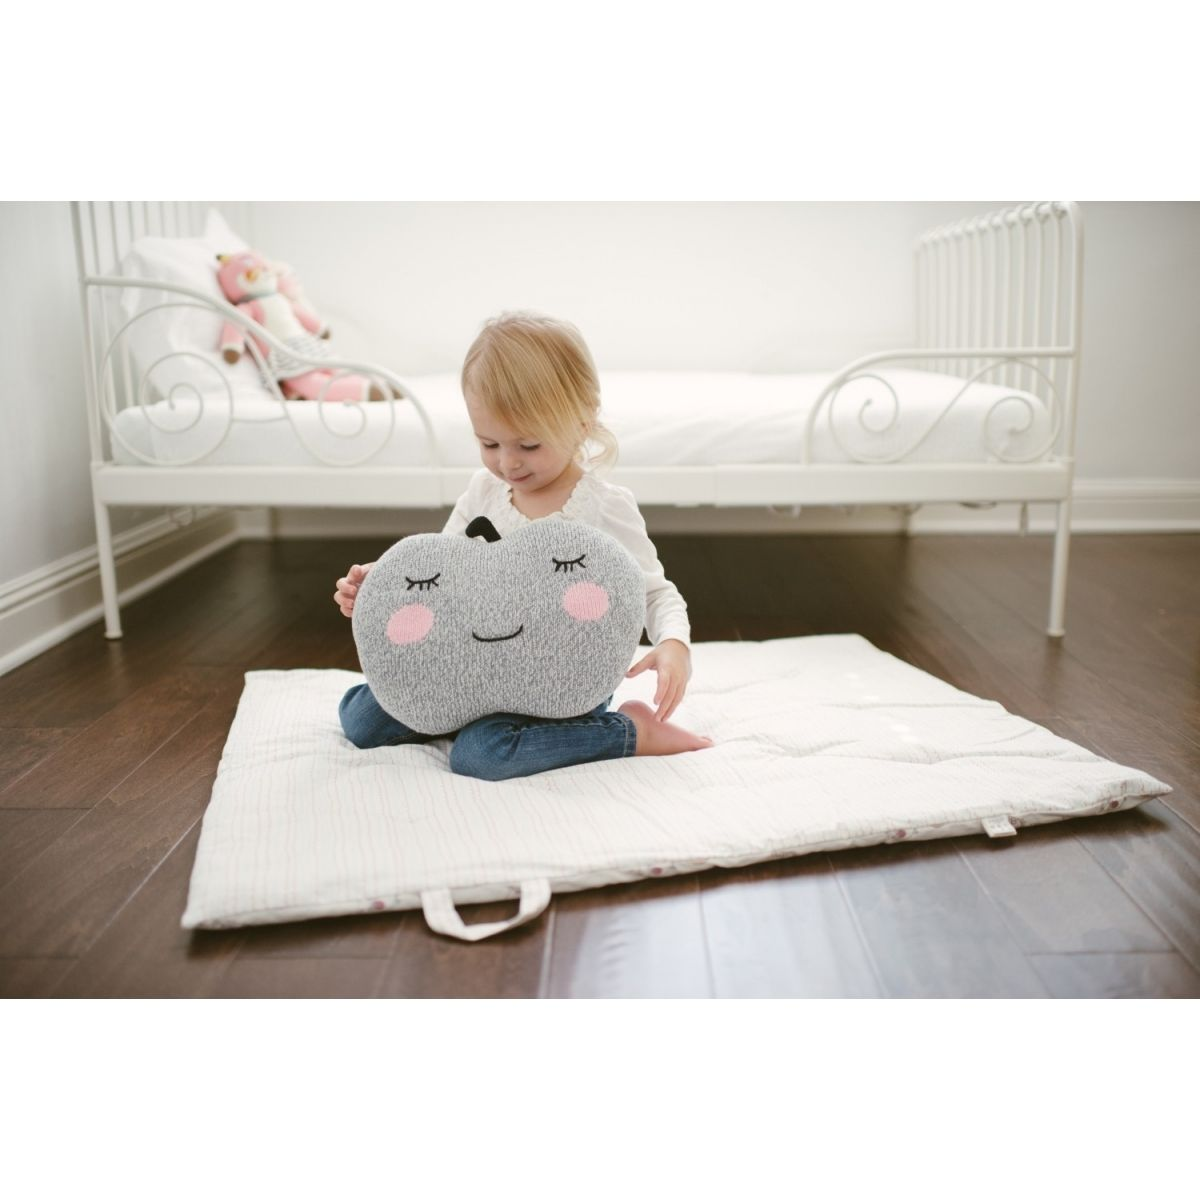 Knit Pillow Apple grey - Blabla Kids